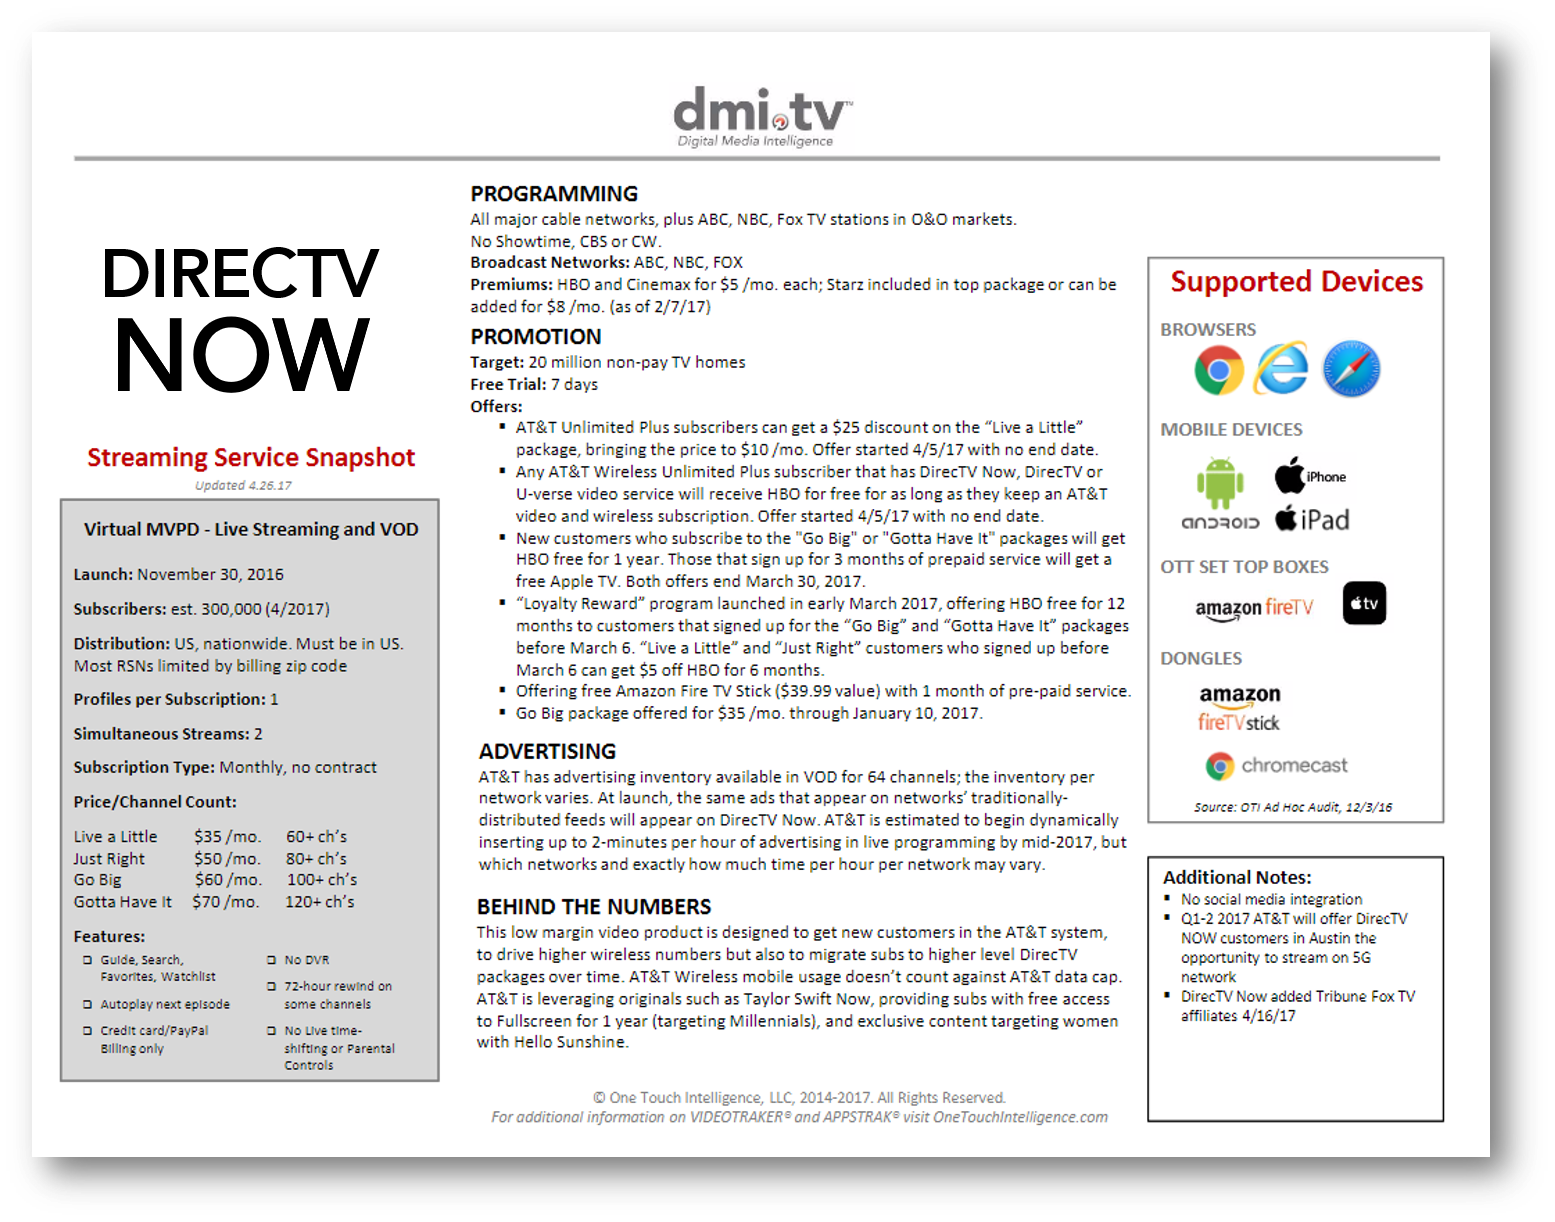 PROVIDER PROFILES - Daily monitoring and reporting on major SVOD, Virtual MVPD, and Direct to Consumer OTT video providers including: Amazon Prime, CBS All Access, DirecTV Now, HBO NOW, Hulu, Netflix, PS Vue, Showtime, Sling TV, Starz and YouTube TV.